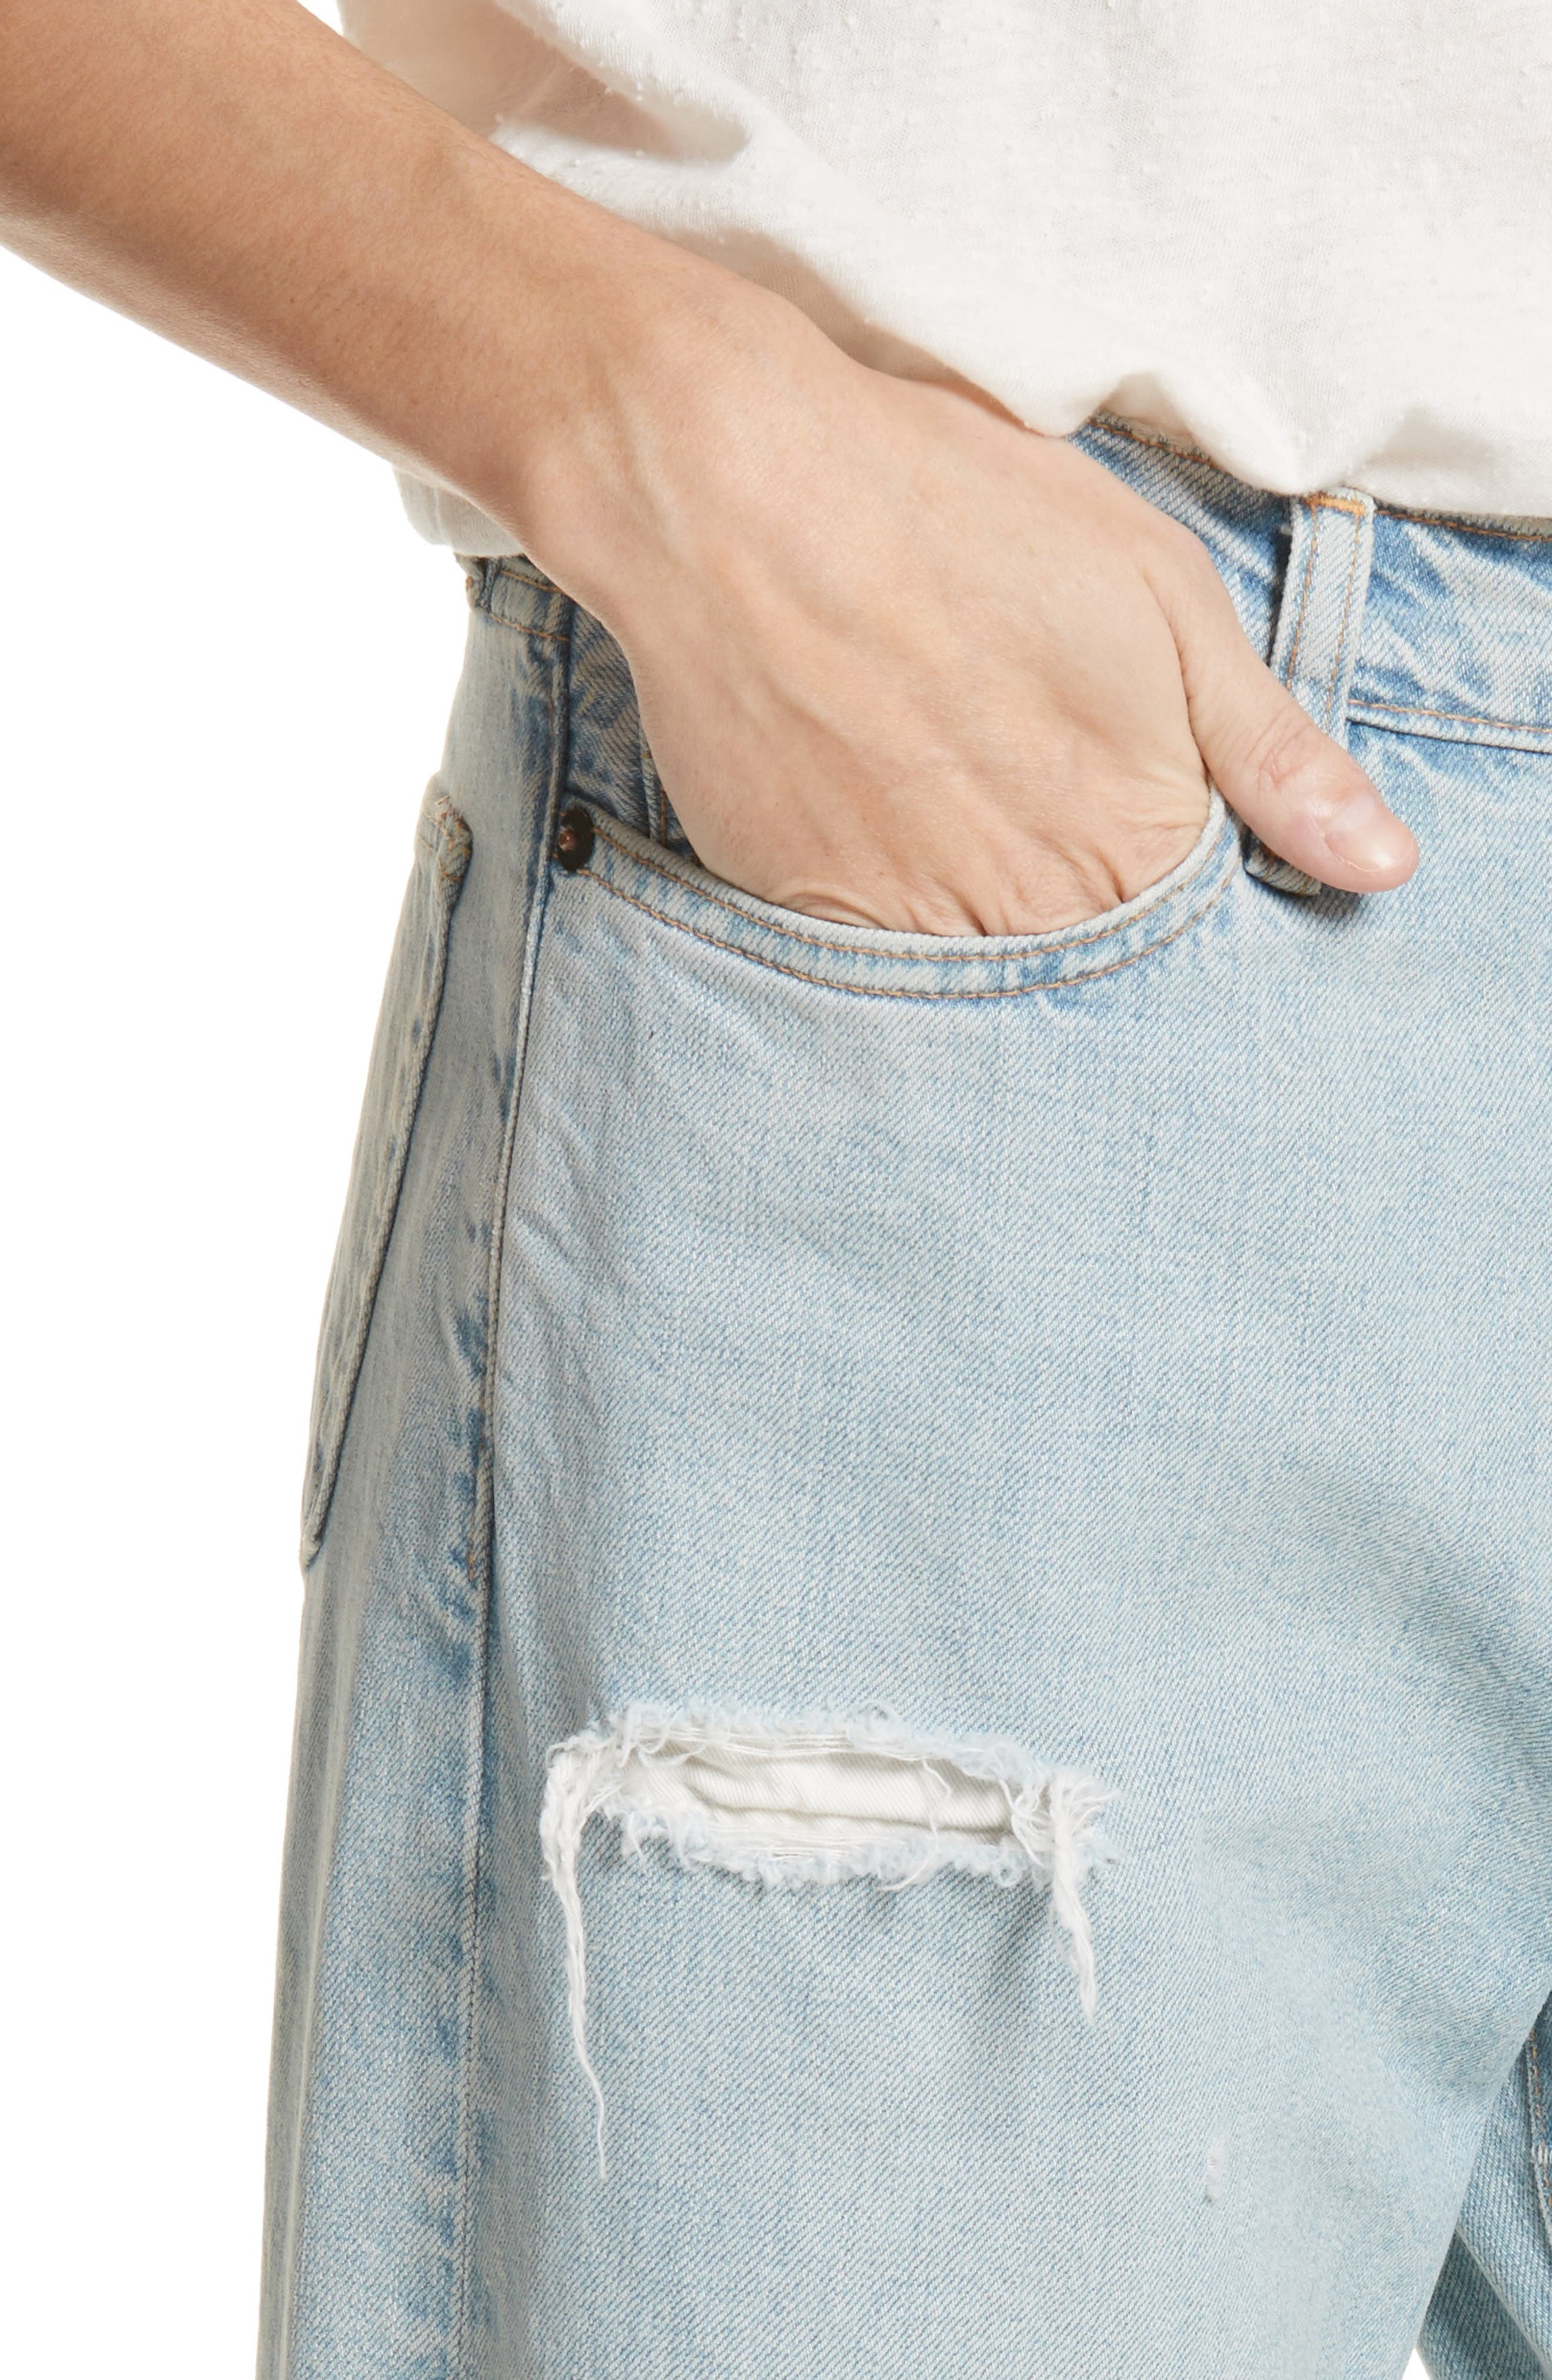 Tibbee Ripped Jeans,                             Alternate thumbnail 4, color,                             400